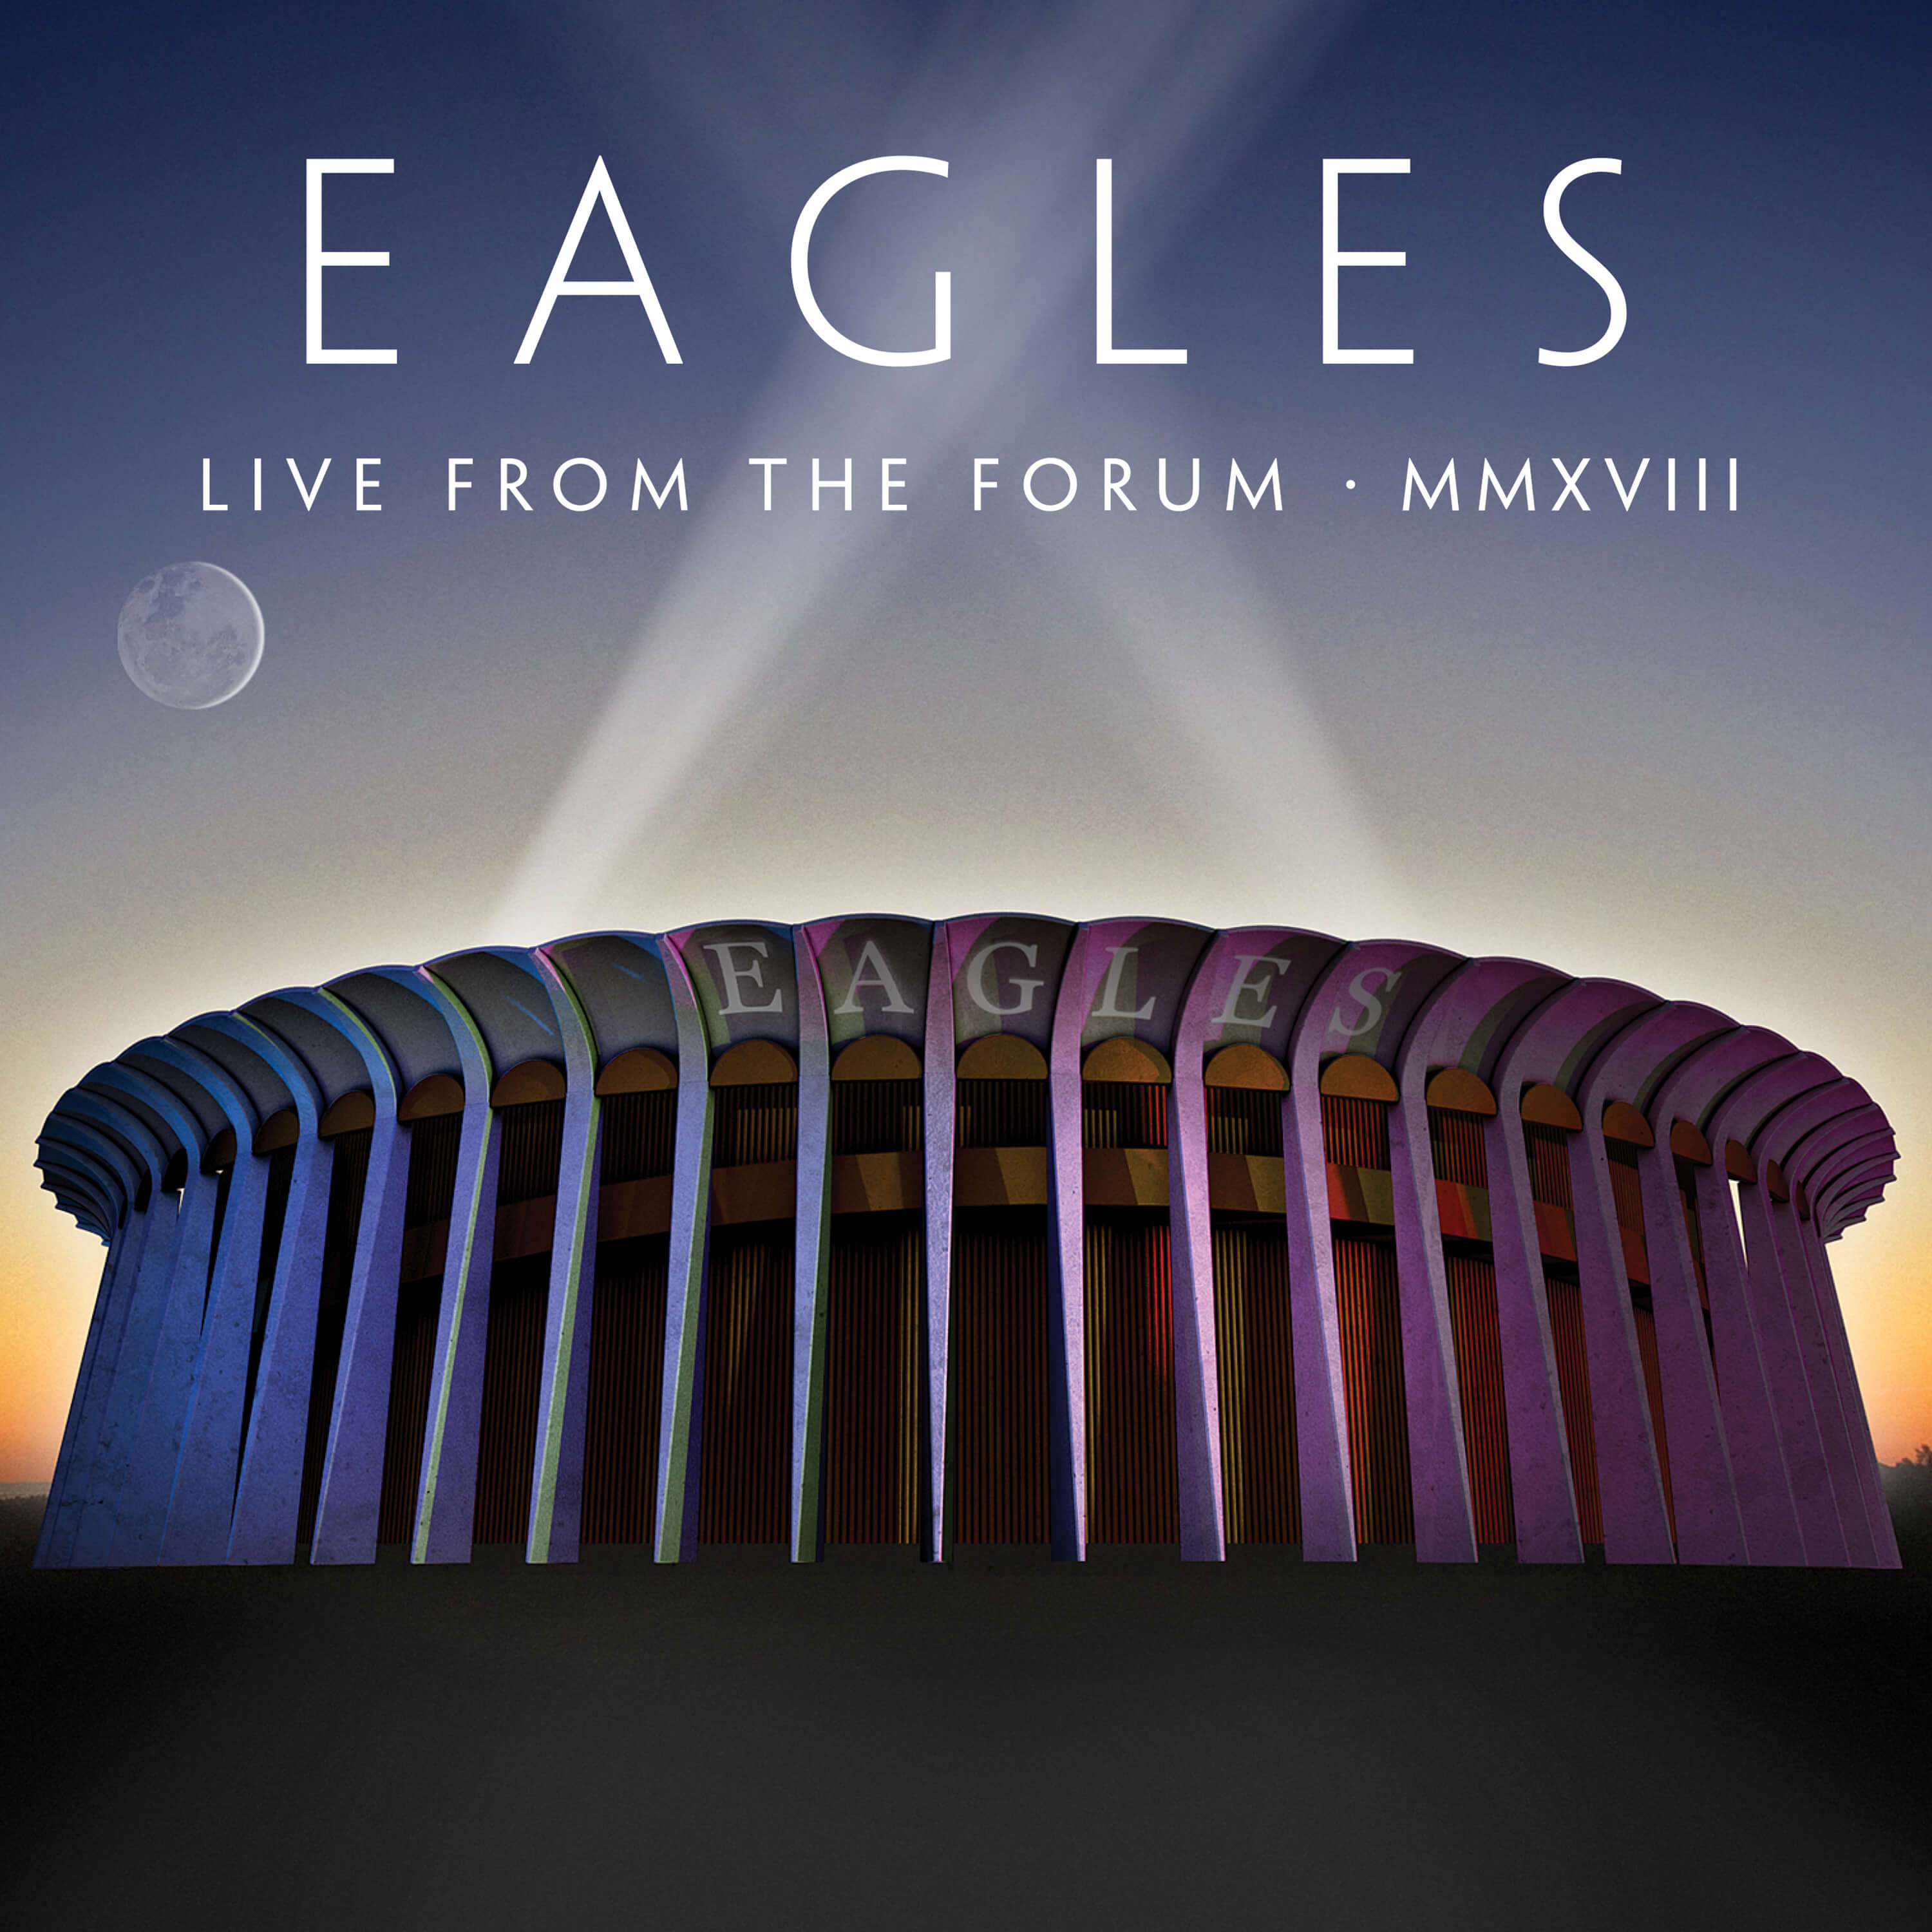 Live from the Forum MMXVIII - Eagles - Musik - RHINO - 0603497847648 - October 16, 2020